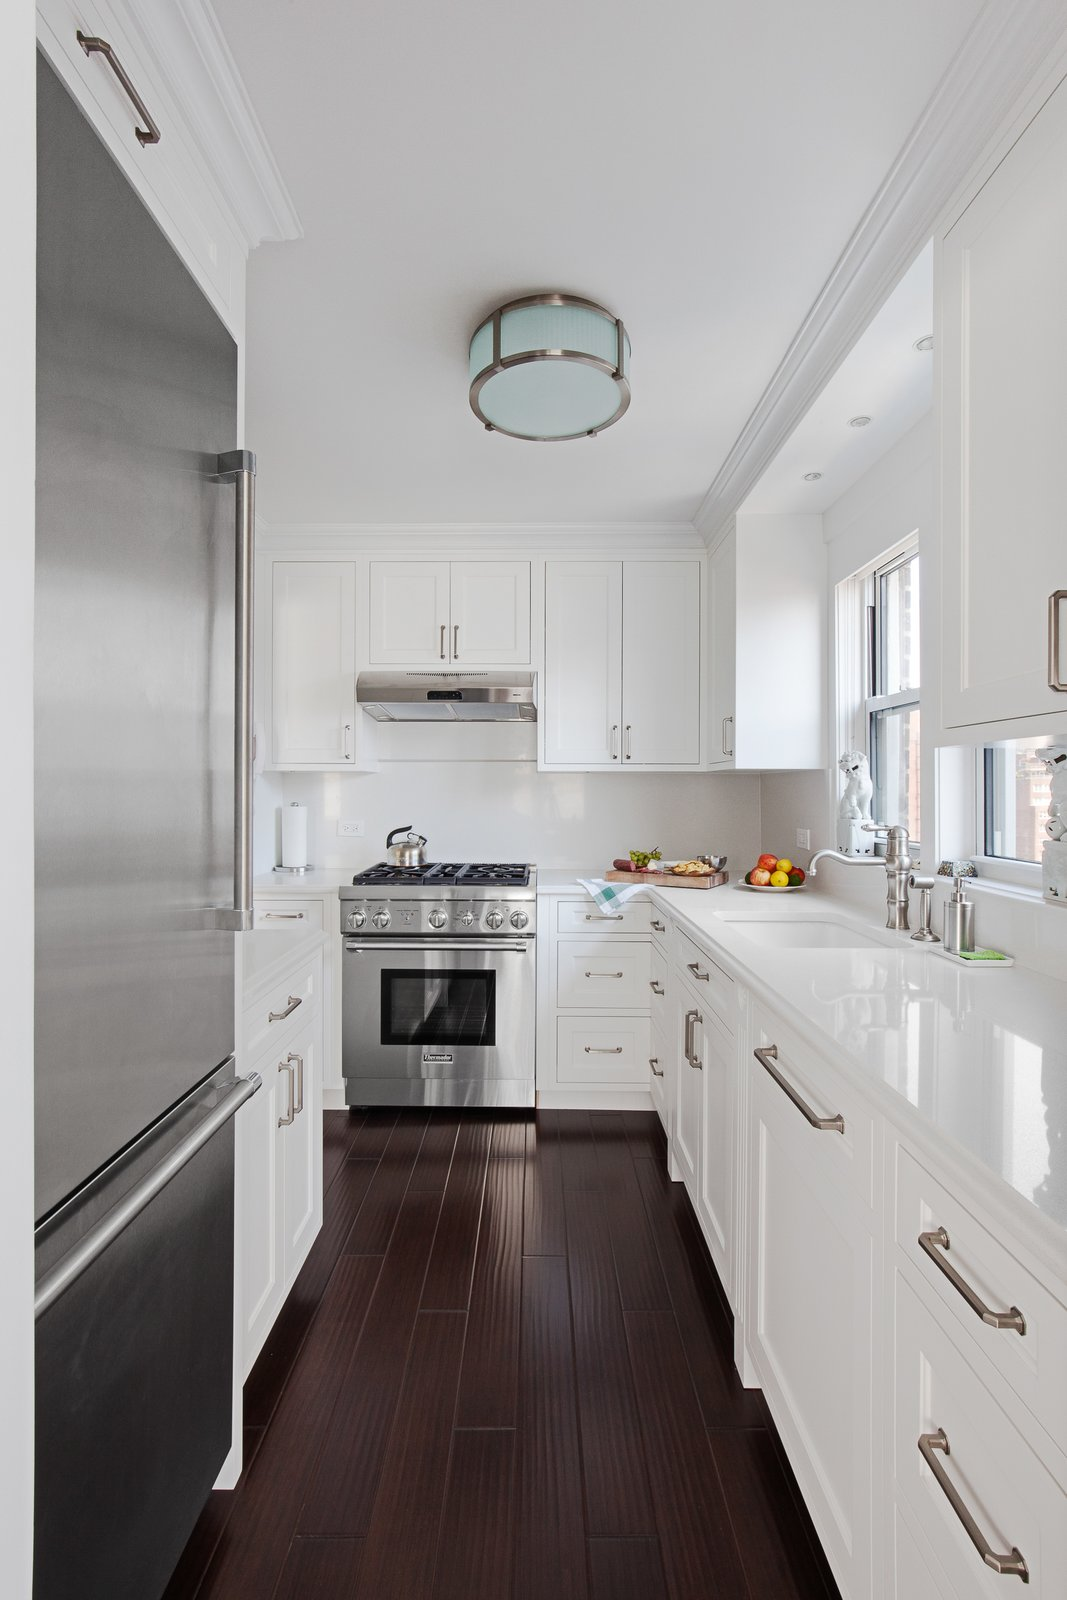 Kitchen, Dark Hardwood Floor, Refrigerator, Drop In Sink, Wall Oven, and White Cabinet  AN ART-FILLED APARTMENT RENOVATION 40 YEARS IN THE MAKING! by Pixy Interiors